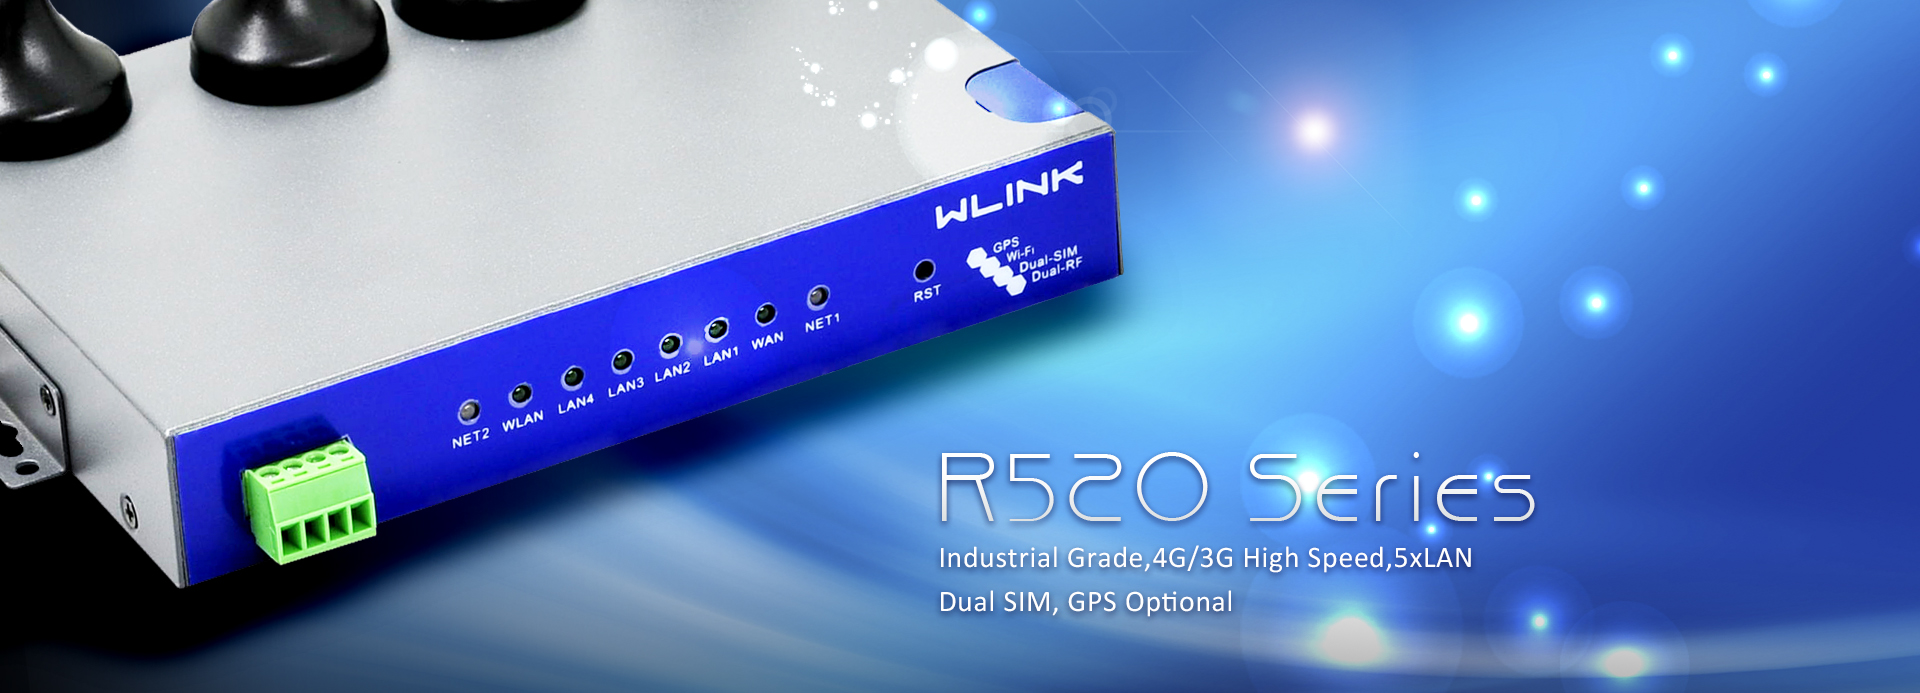 R520 4G 3G Router